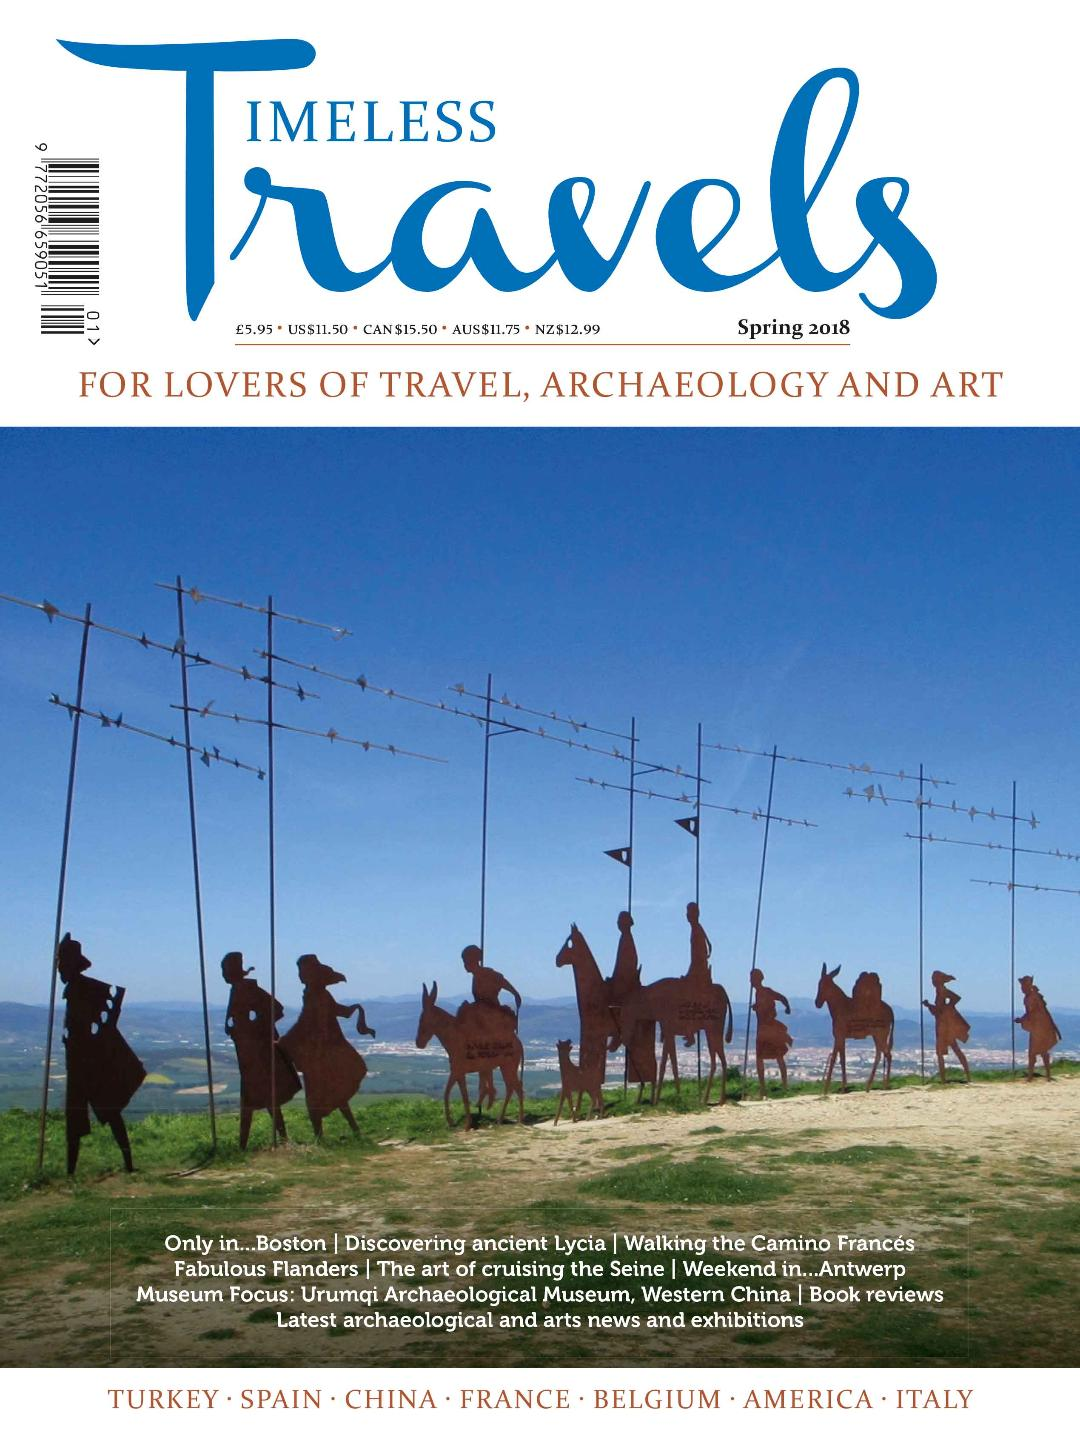 Spring issue of Timeless Travels is now published